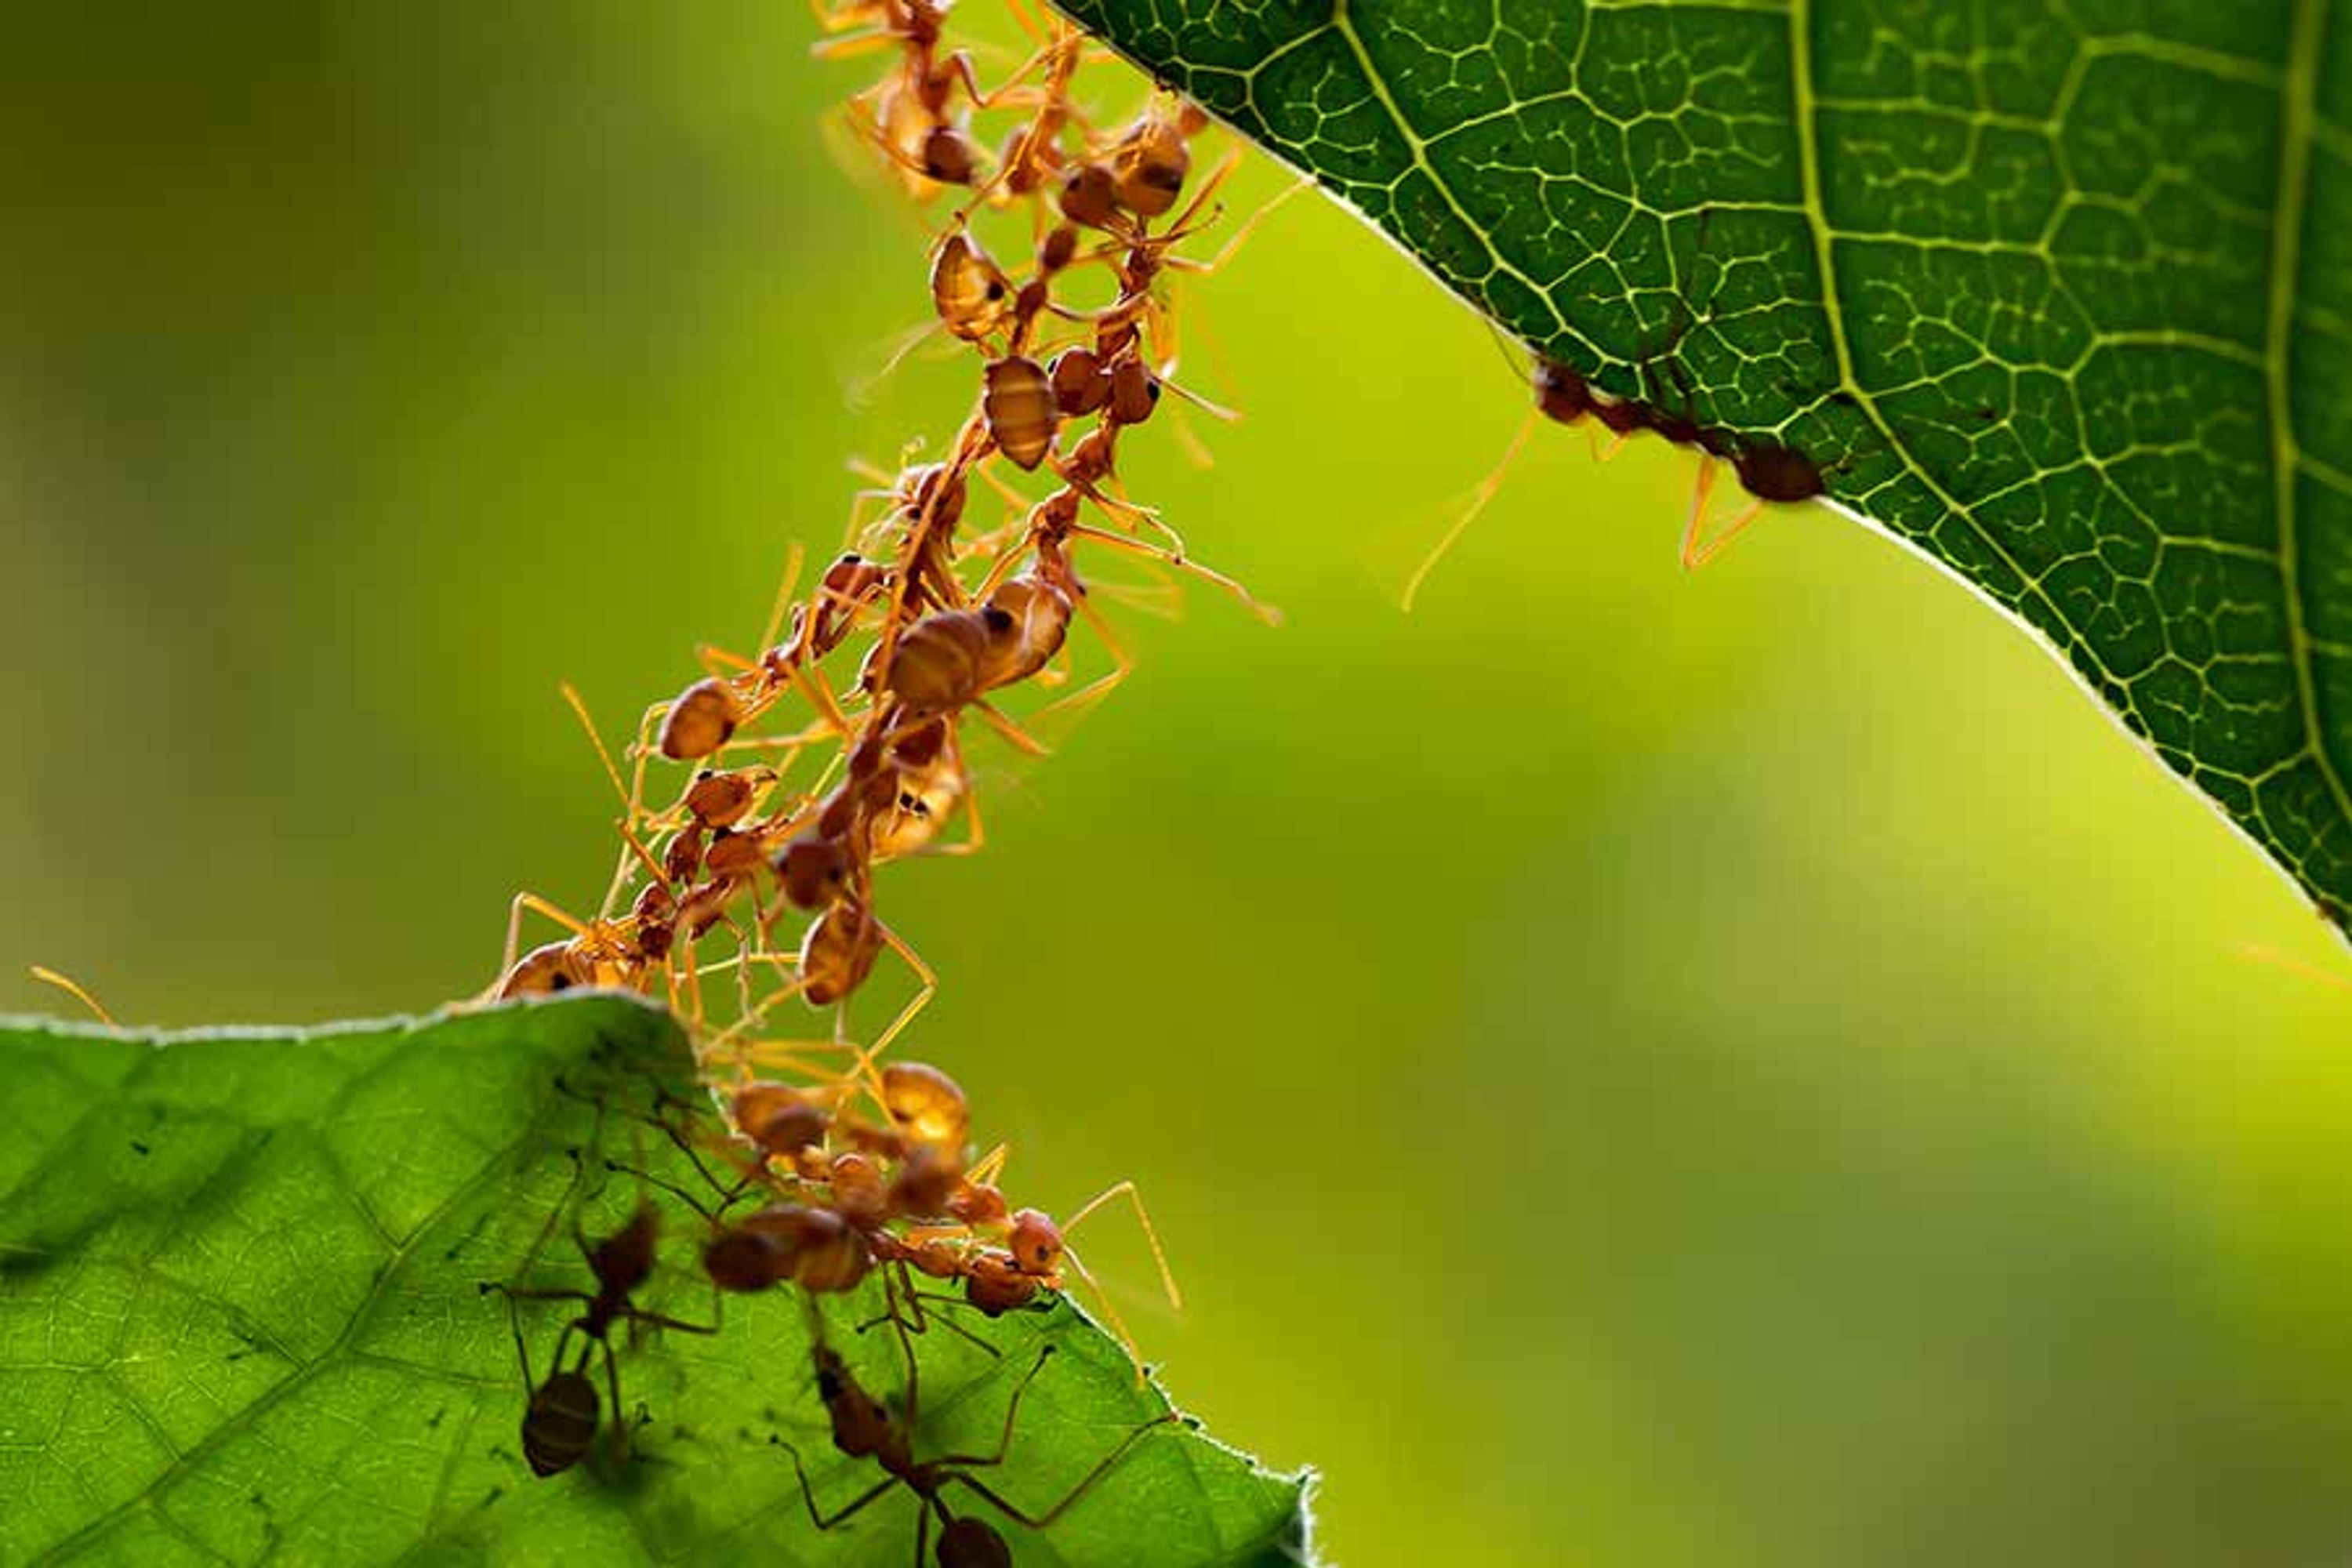 ants looking like a collective organism moving between two leaves